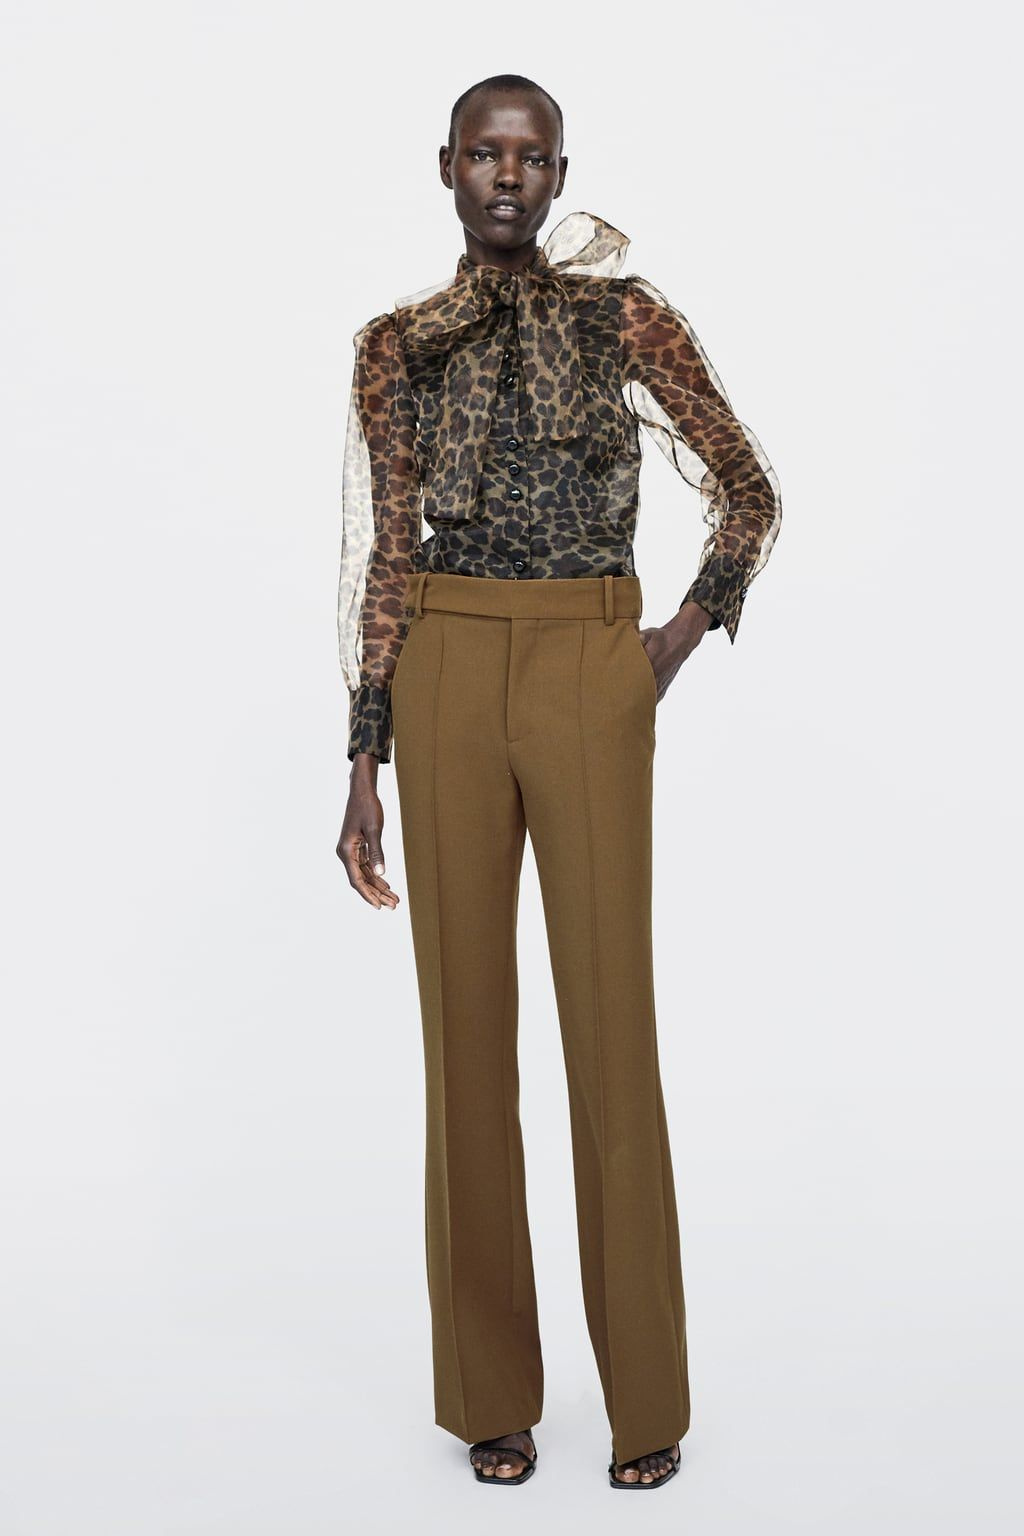 efb5c47ee67a ANIMAL PRINT BLOUSE WITH BOW DETAILS4,990 RSDLEOPARD / TAN - 2015/609